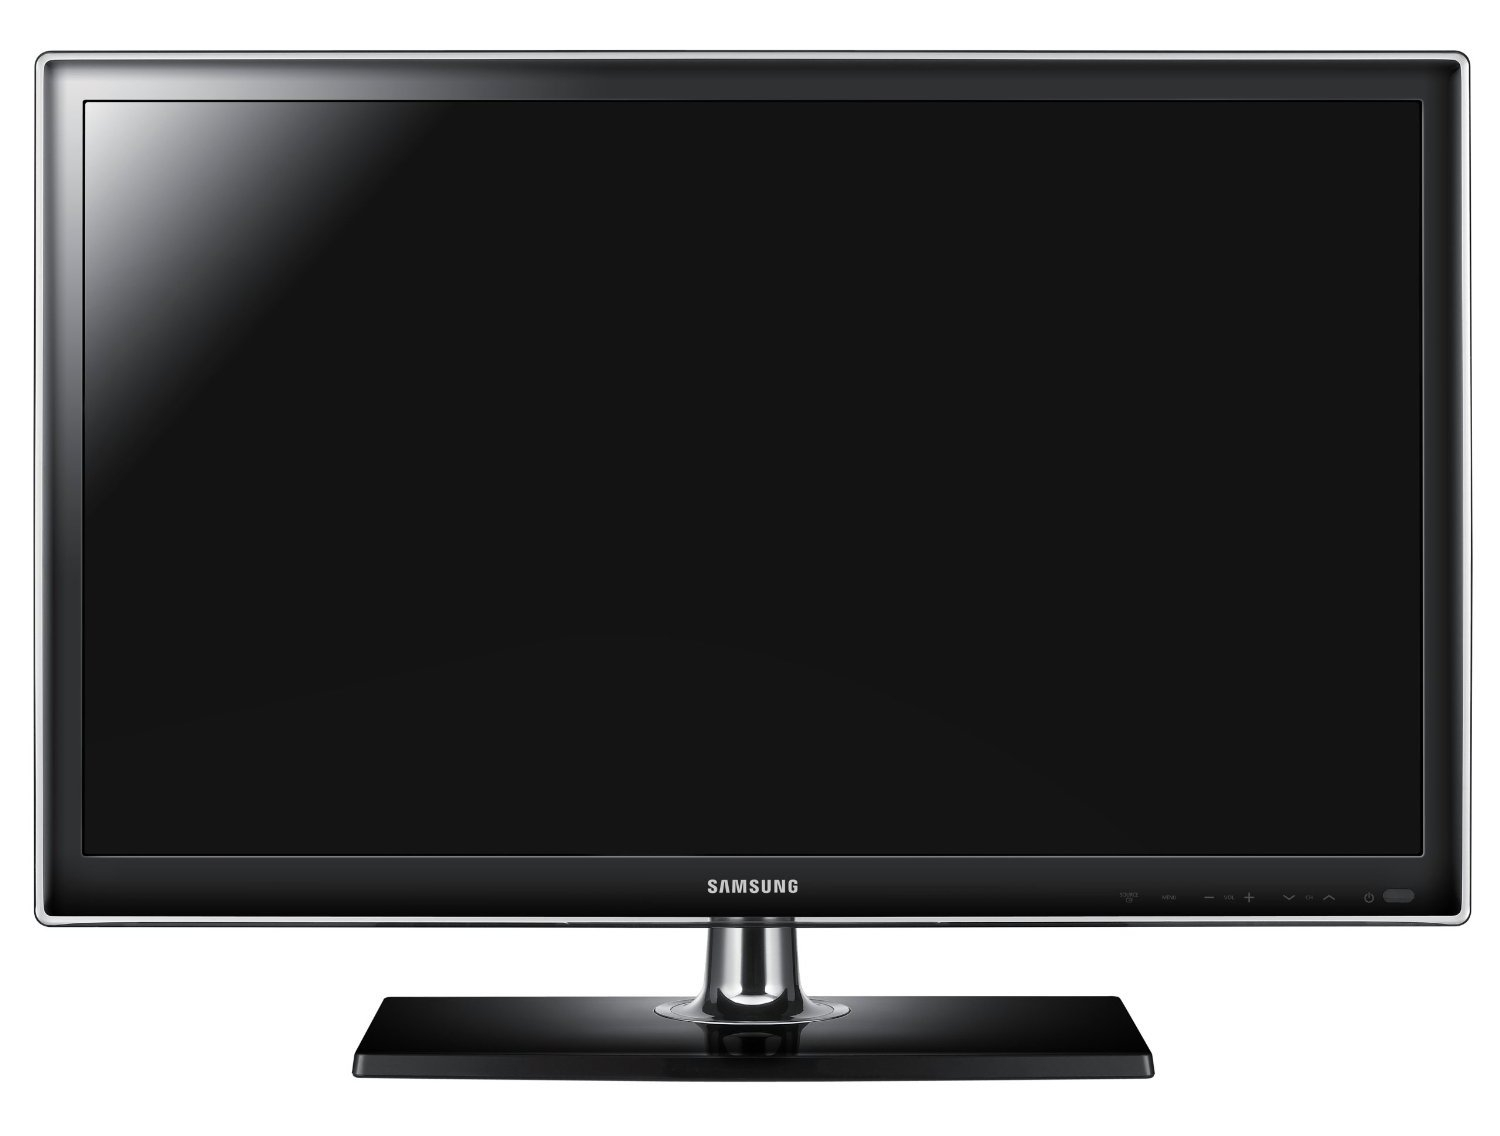 samsung ua 46d5000 multisystem led tv for 110 240 volts. Black Bedroom Furniture Sets. Home Design Ideas